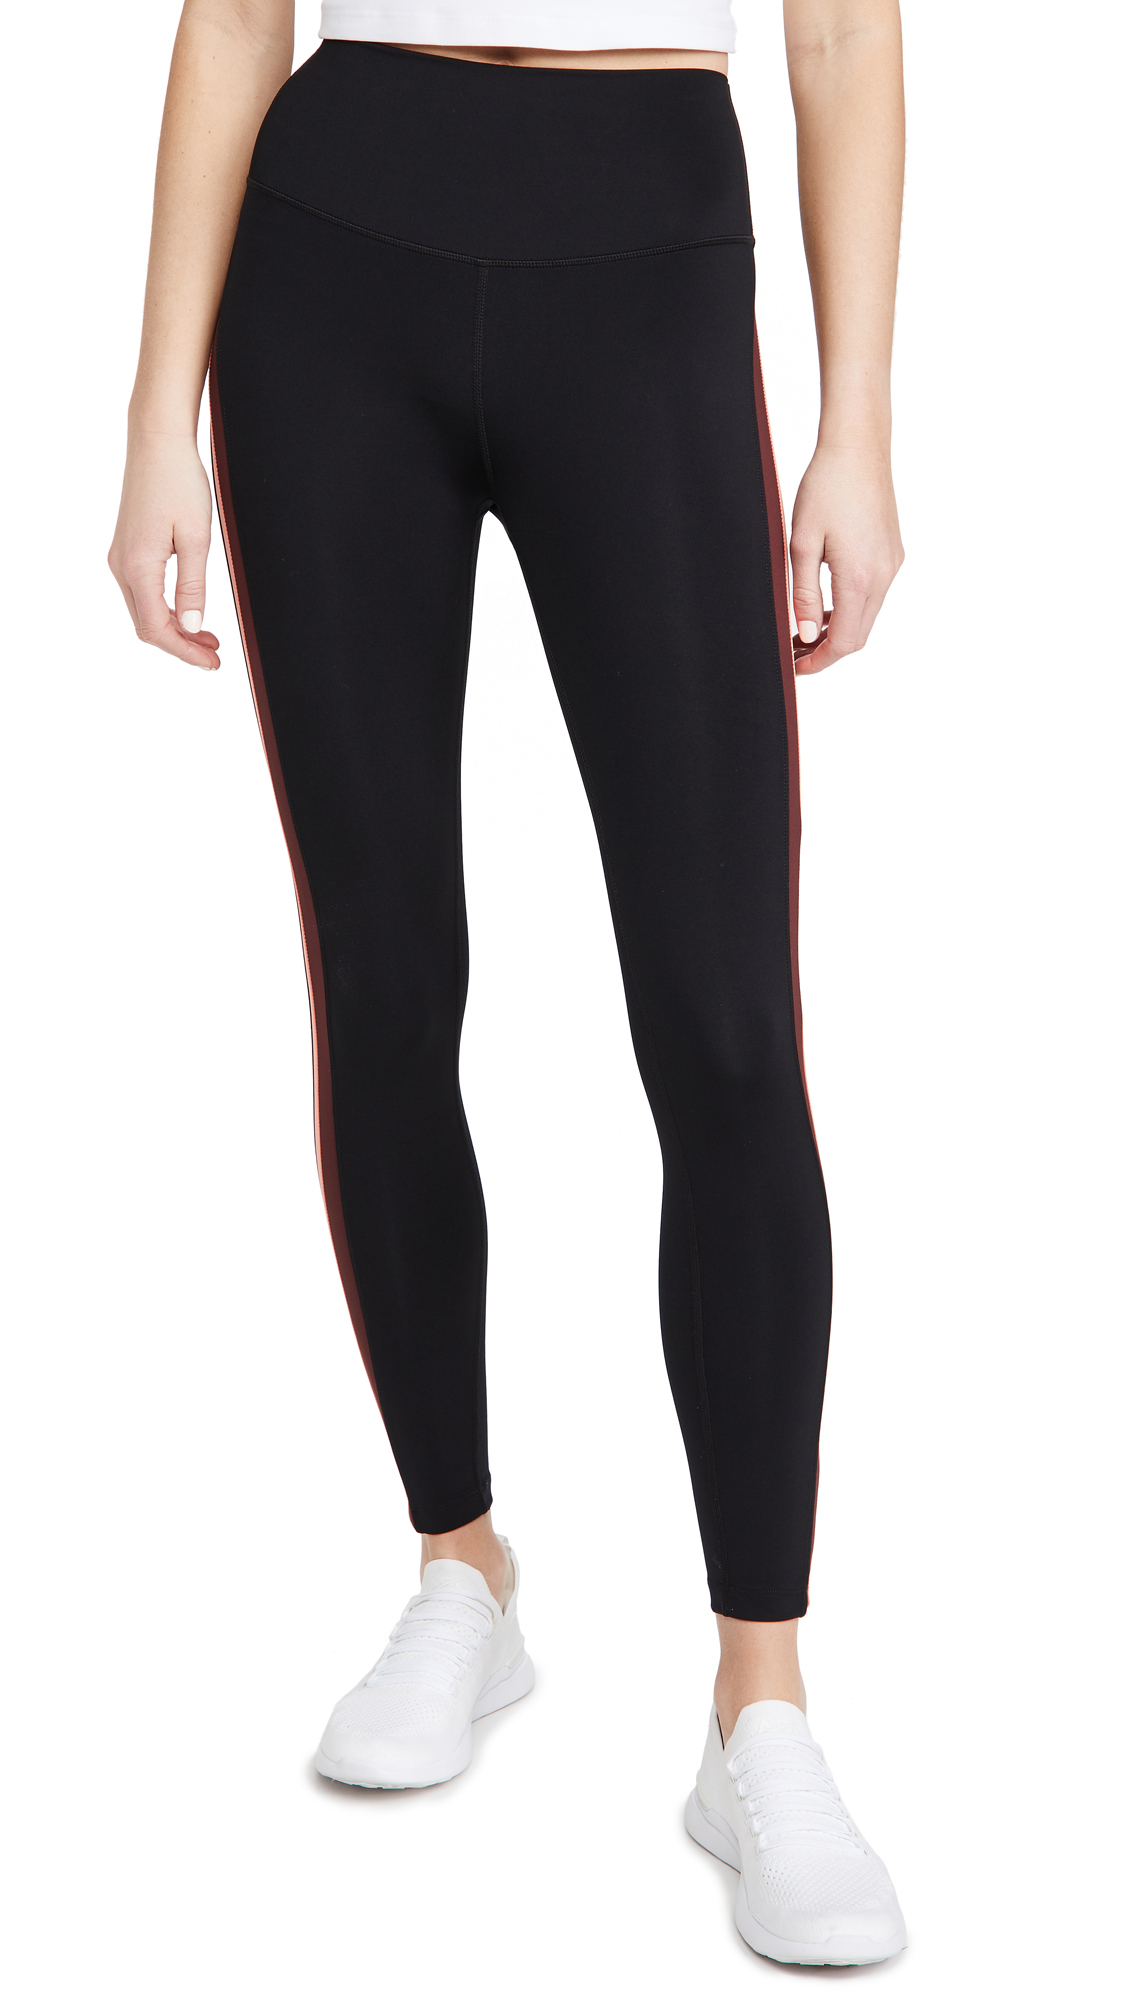 Splits59 Sydney High Waist Leggings